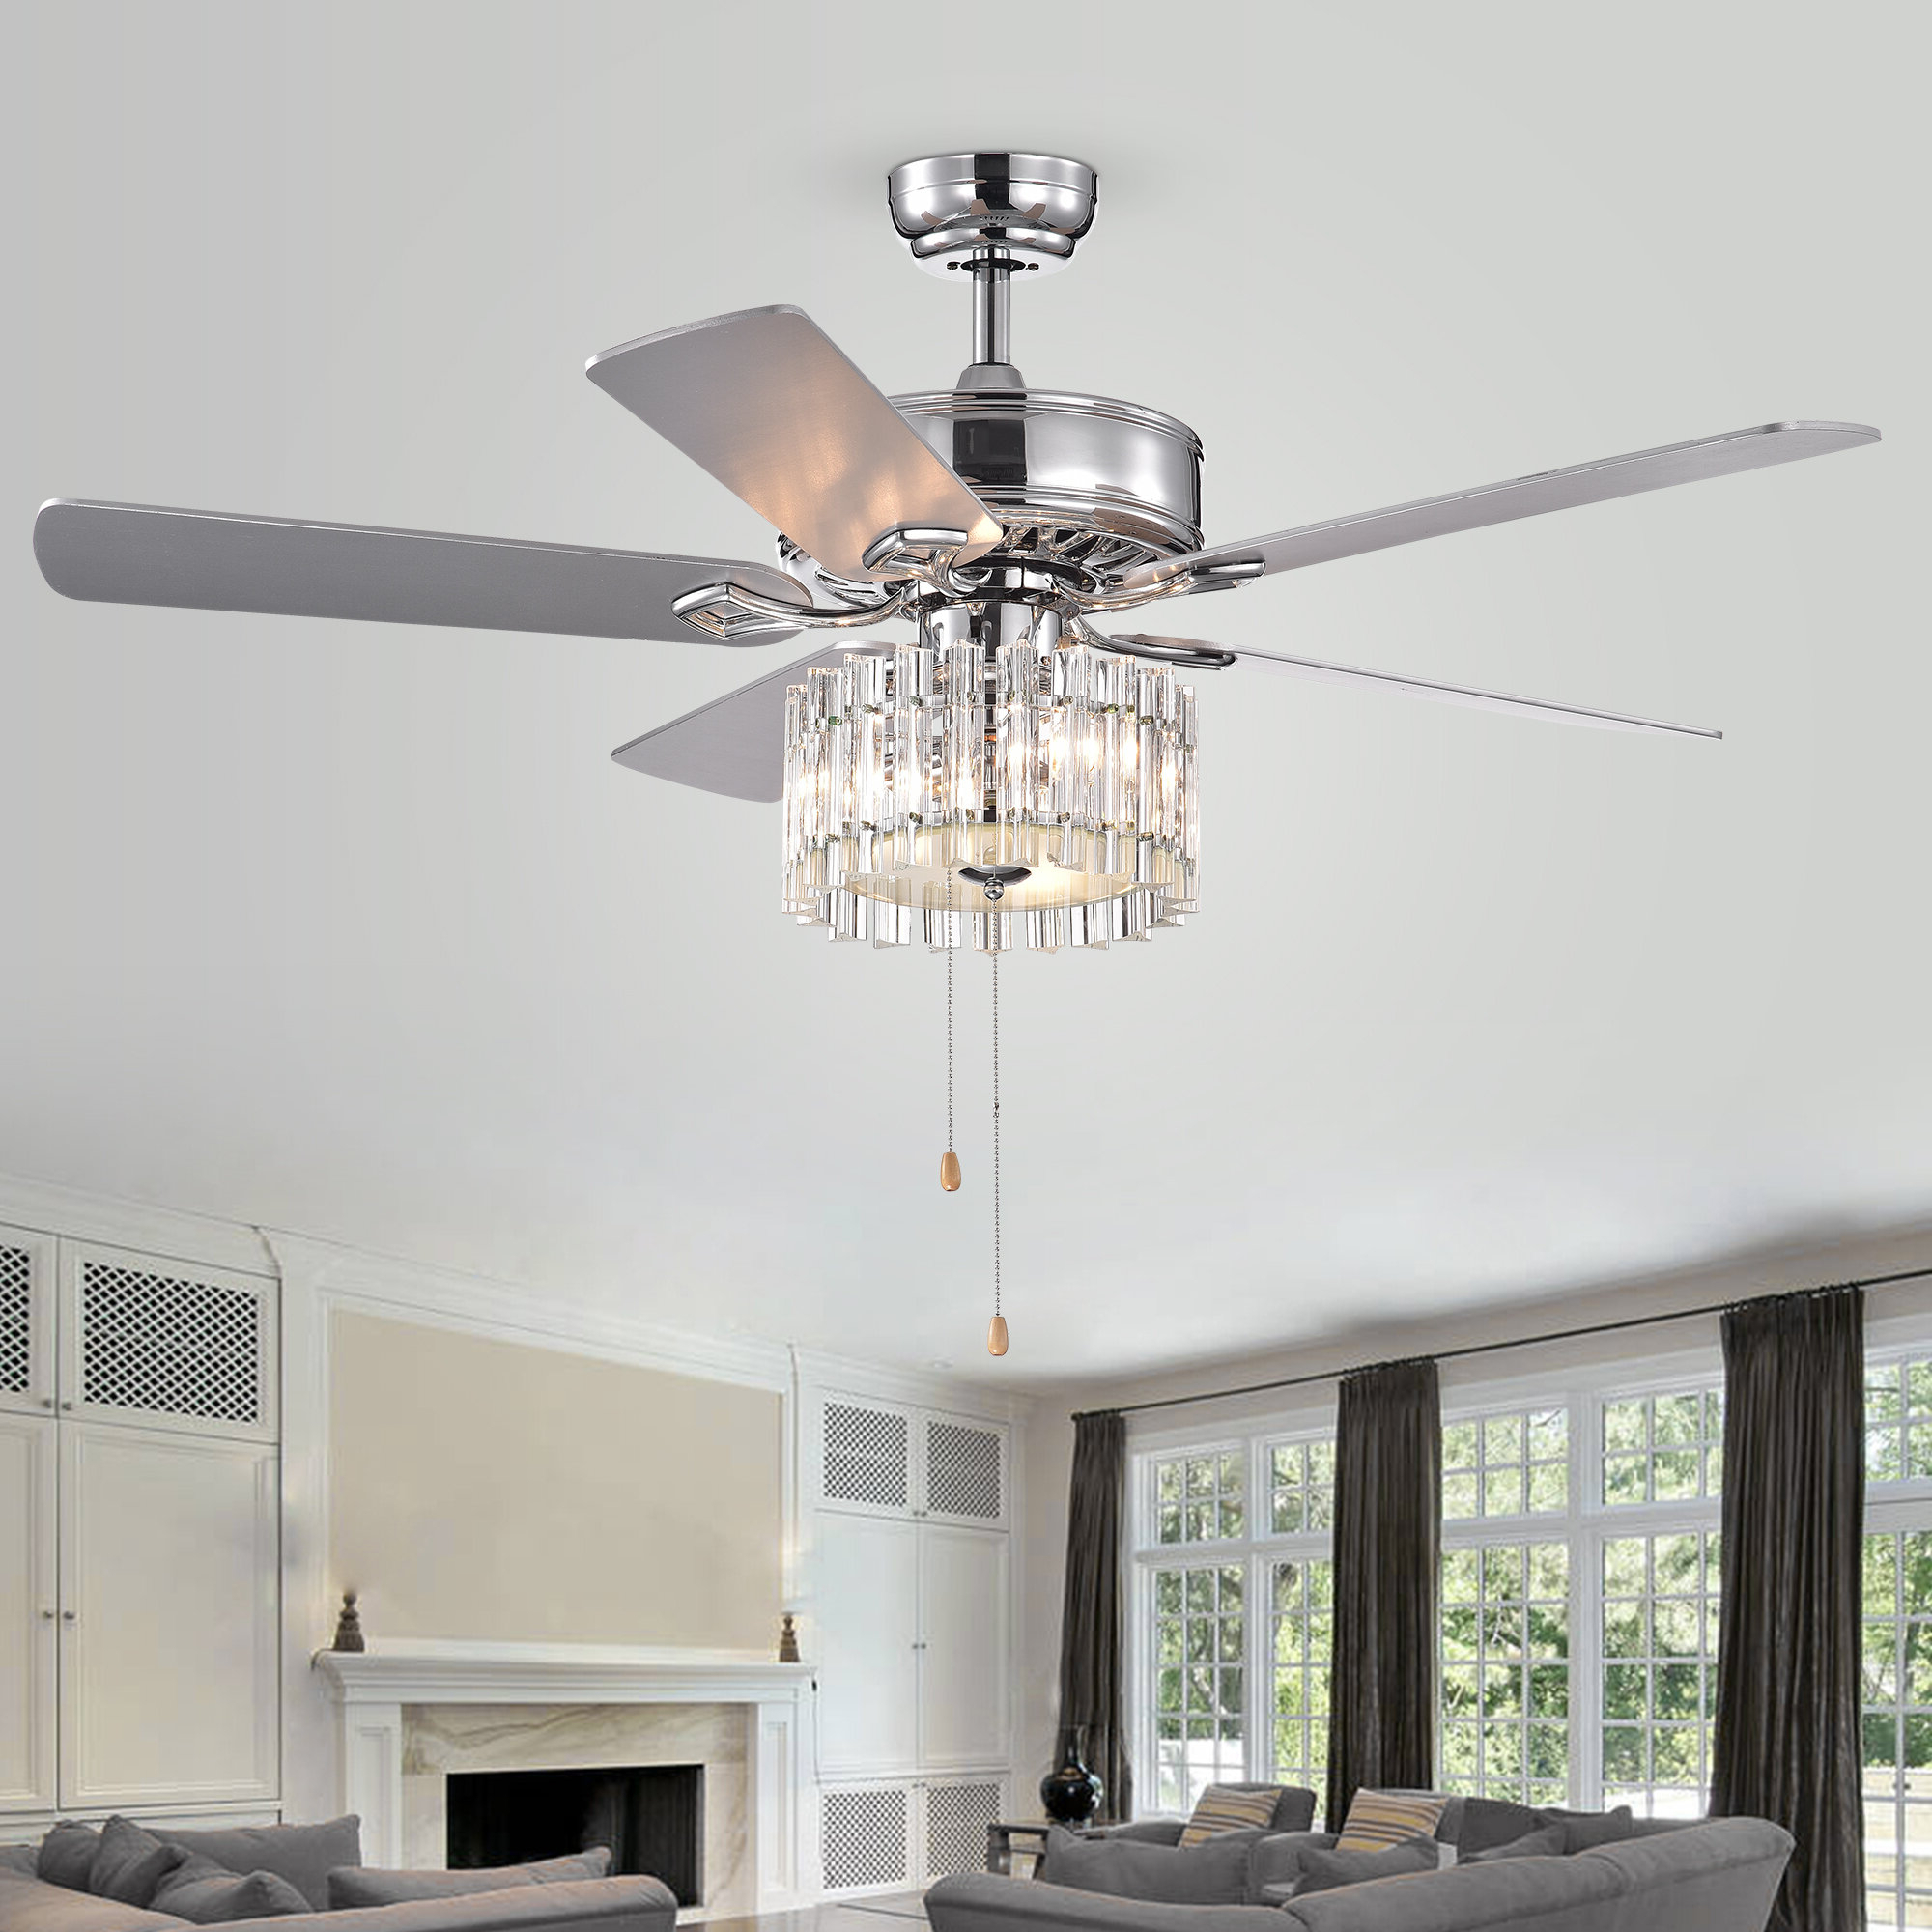 Ronan 3 Blade Ceiling Fans With Regard To Favorite Clark 5 Blade Ceiling Fan, Light Kit Included (Gallery 10 of 20)